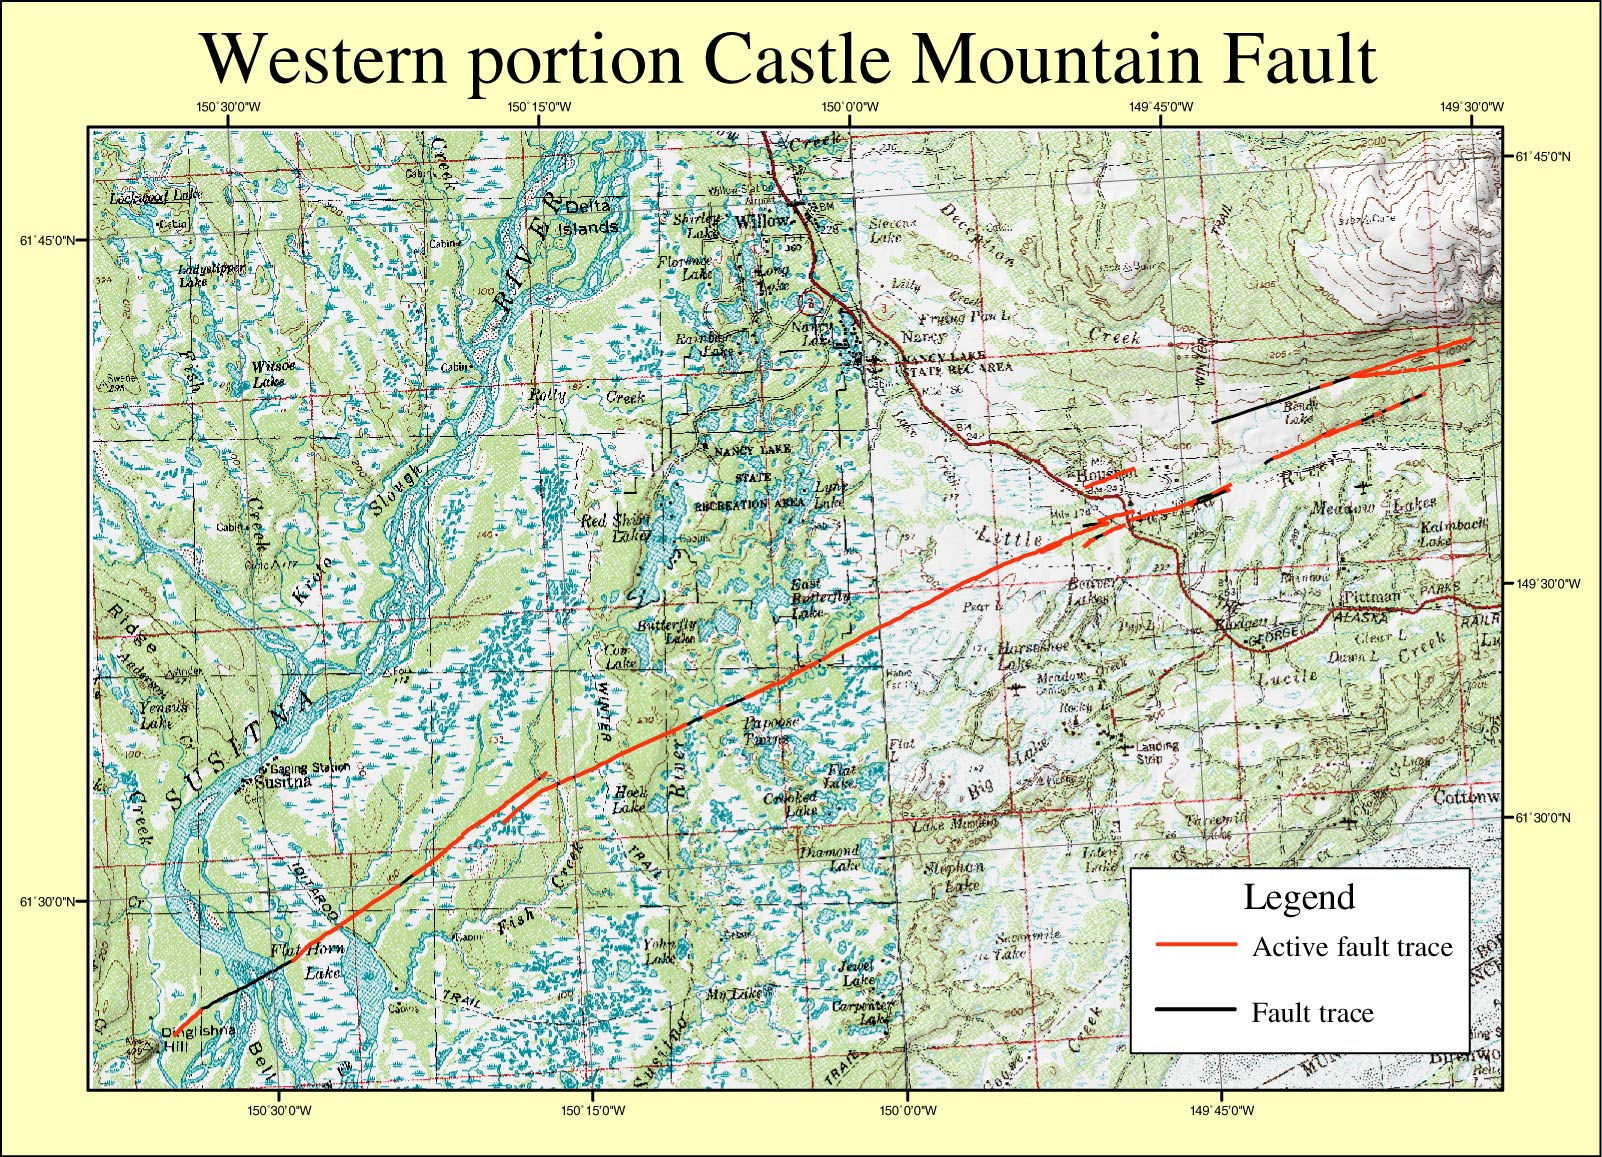 GIS Coverages Of The Castle Mountain Fault South Central Alaska - Fault lines in us map